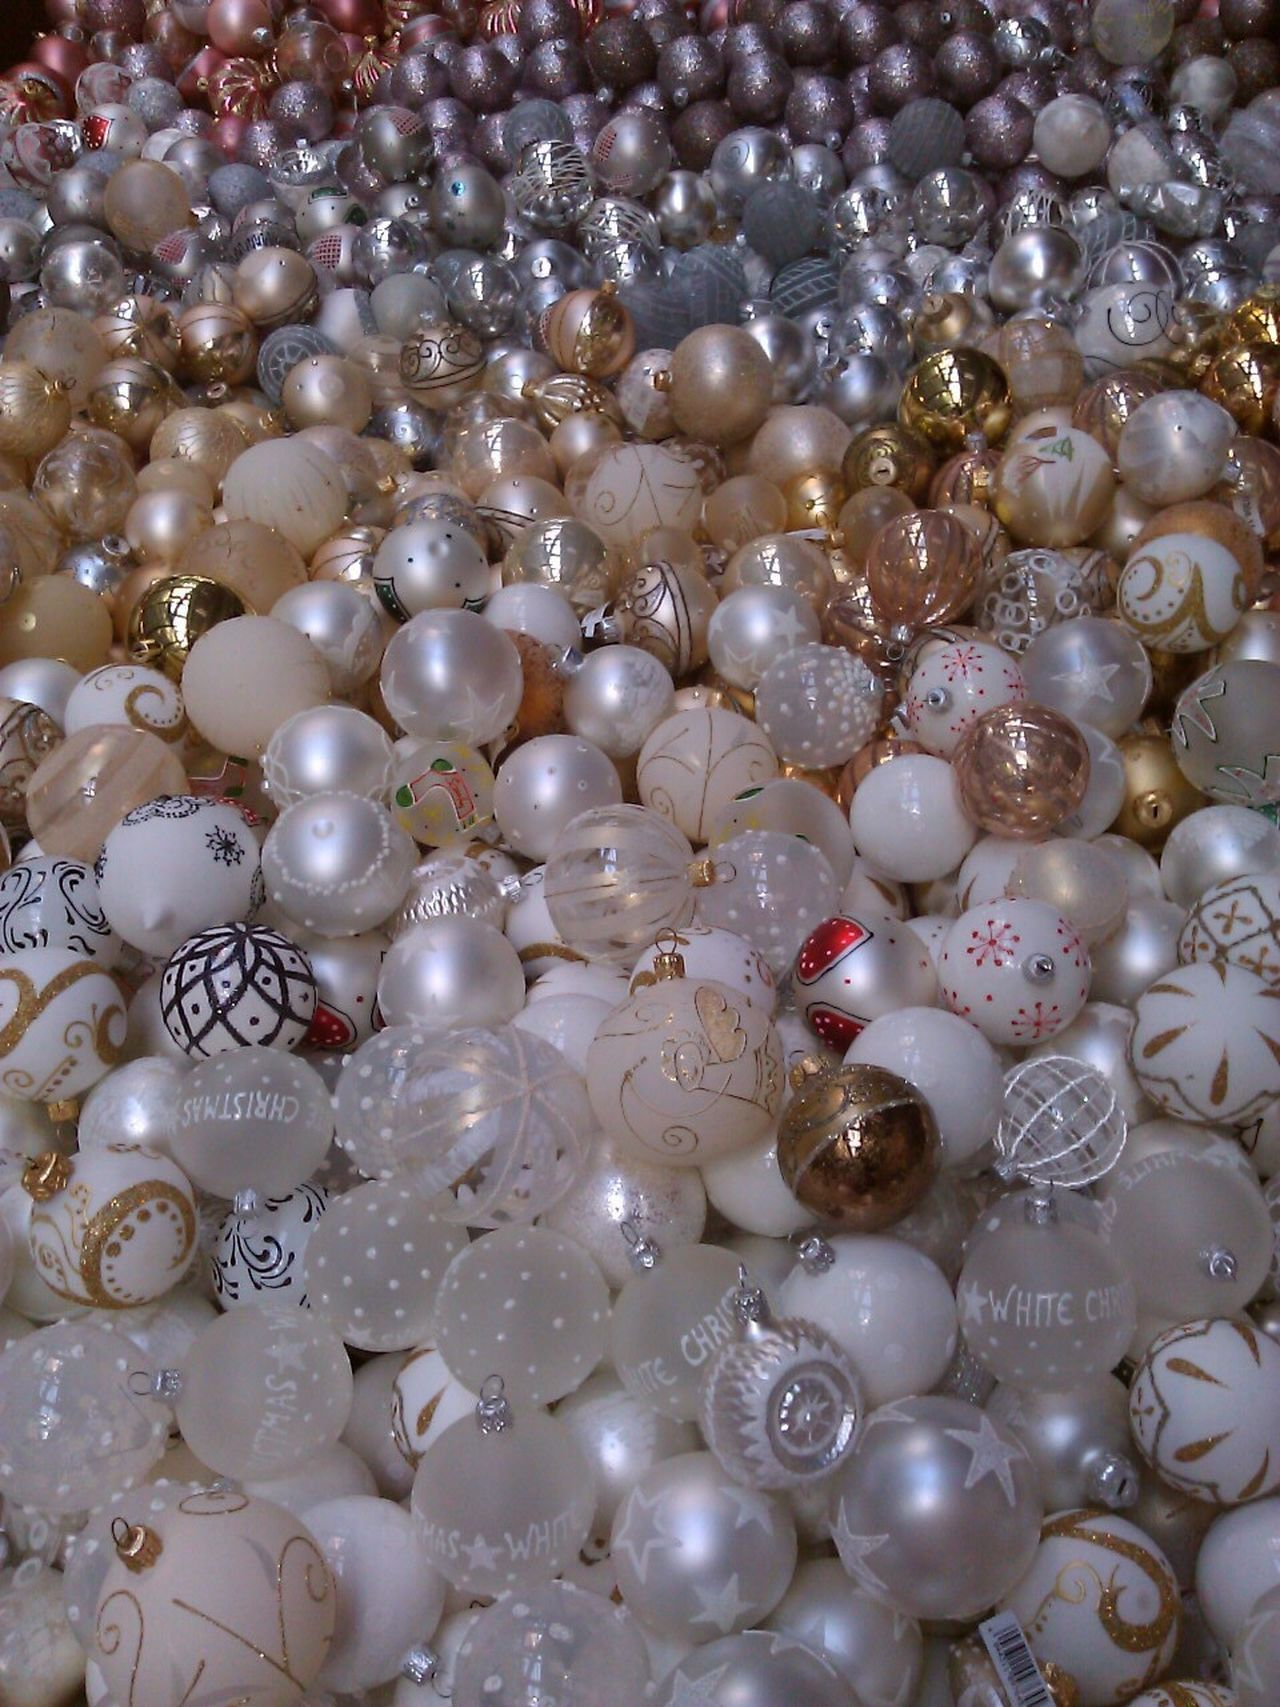 Early Christmas 😁 The Culture Of The Holidays 43 Golden Moments Colour Of Life Lots Of Balls Christmas Balls White Balls White Gold Golden Balls Silver  Silver Balls Multi Colored MerryChristmas Merry Christmas Merry Xmas! Christmas Decorations Christmastime